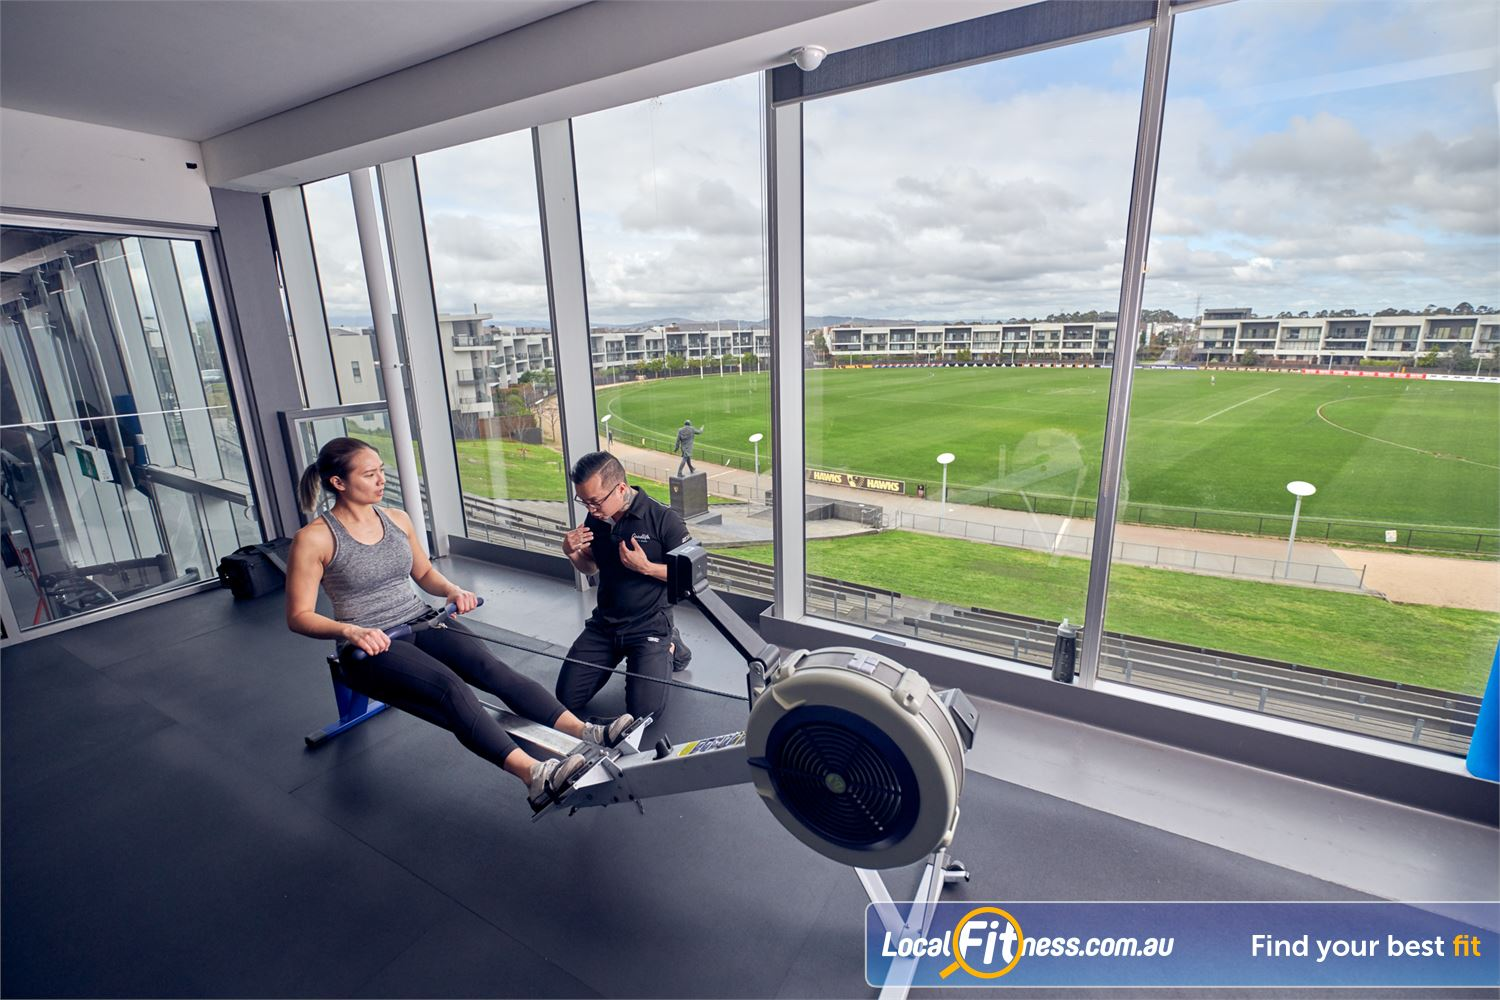 Goodlife Health Clubs Waverley Park Near Springvale Our Waverley Park gym team can take you through a rowing workout.